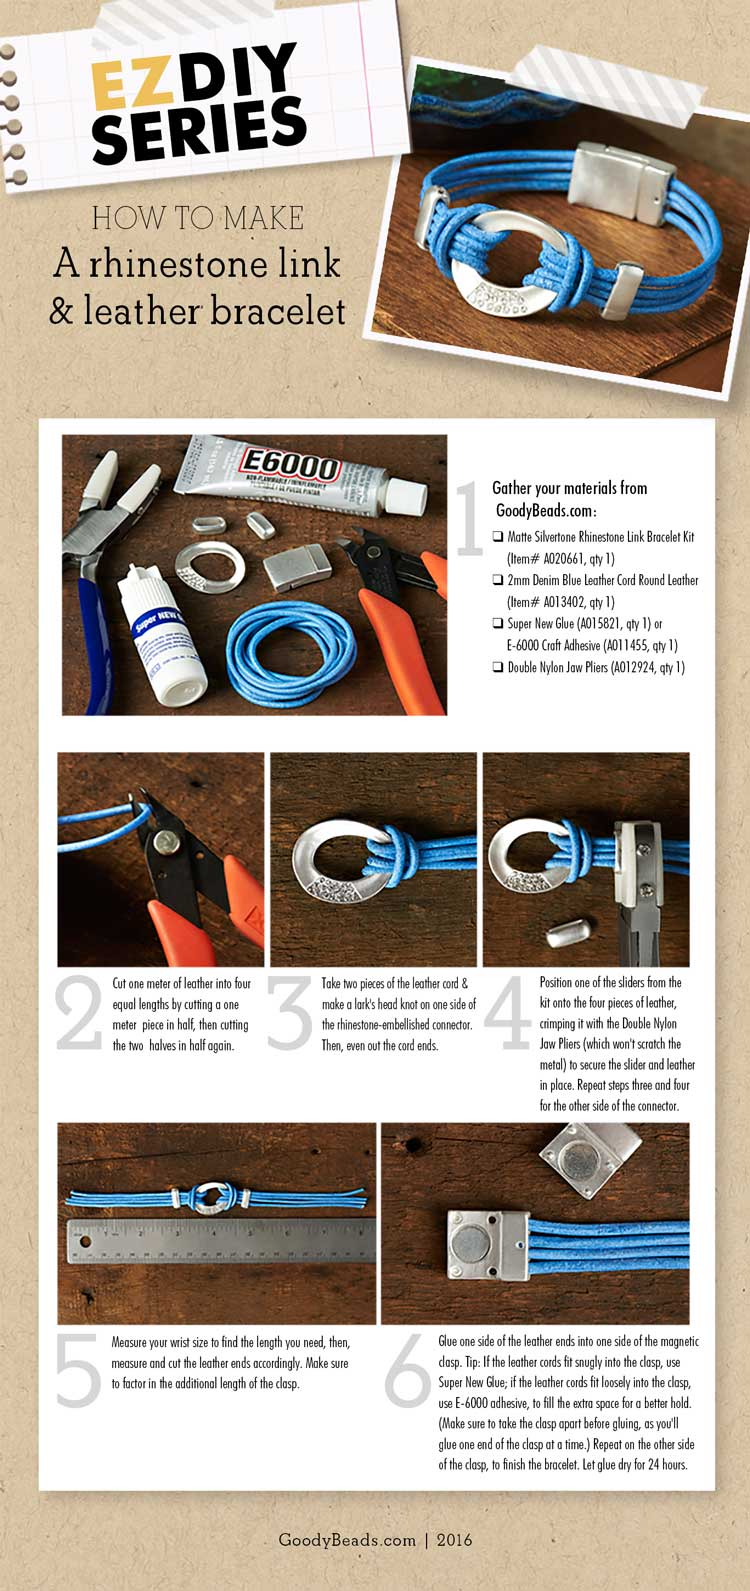 GoodyBeads | Blog: EZDIY Series - How to Make a rhinestone link and leather bracelet